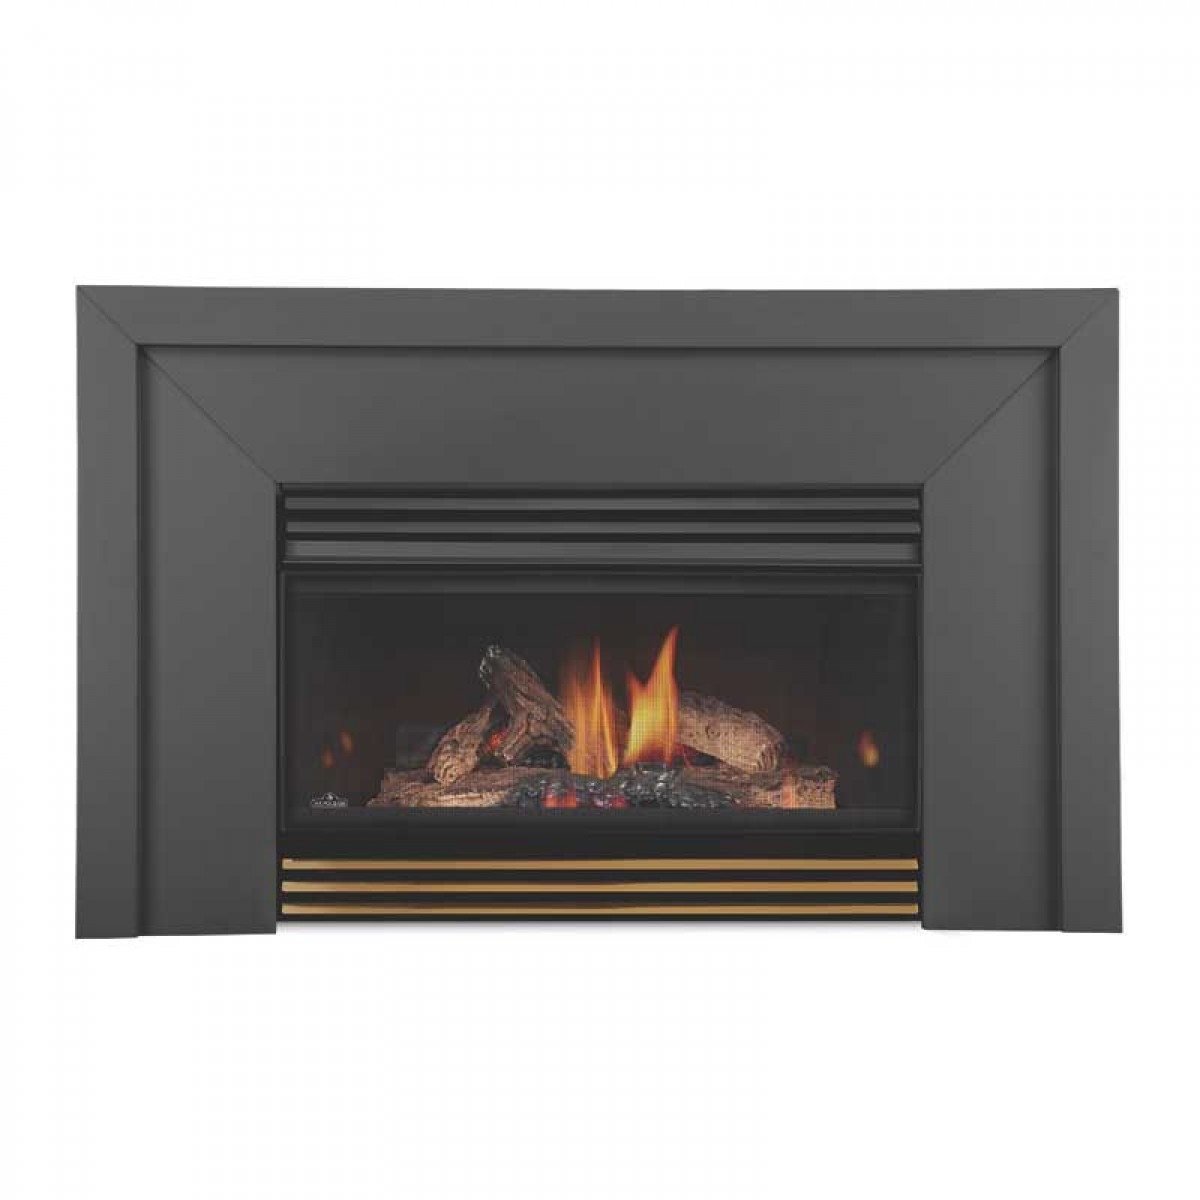 Napoleon GI3600-4N Basic Natural gas fireplace insert w ...